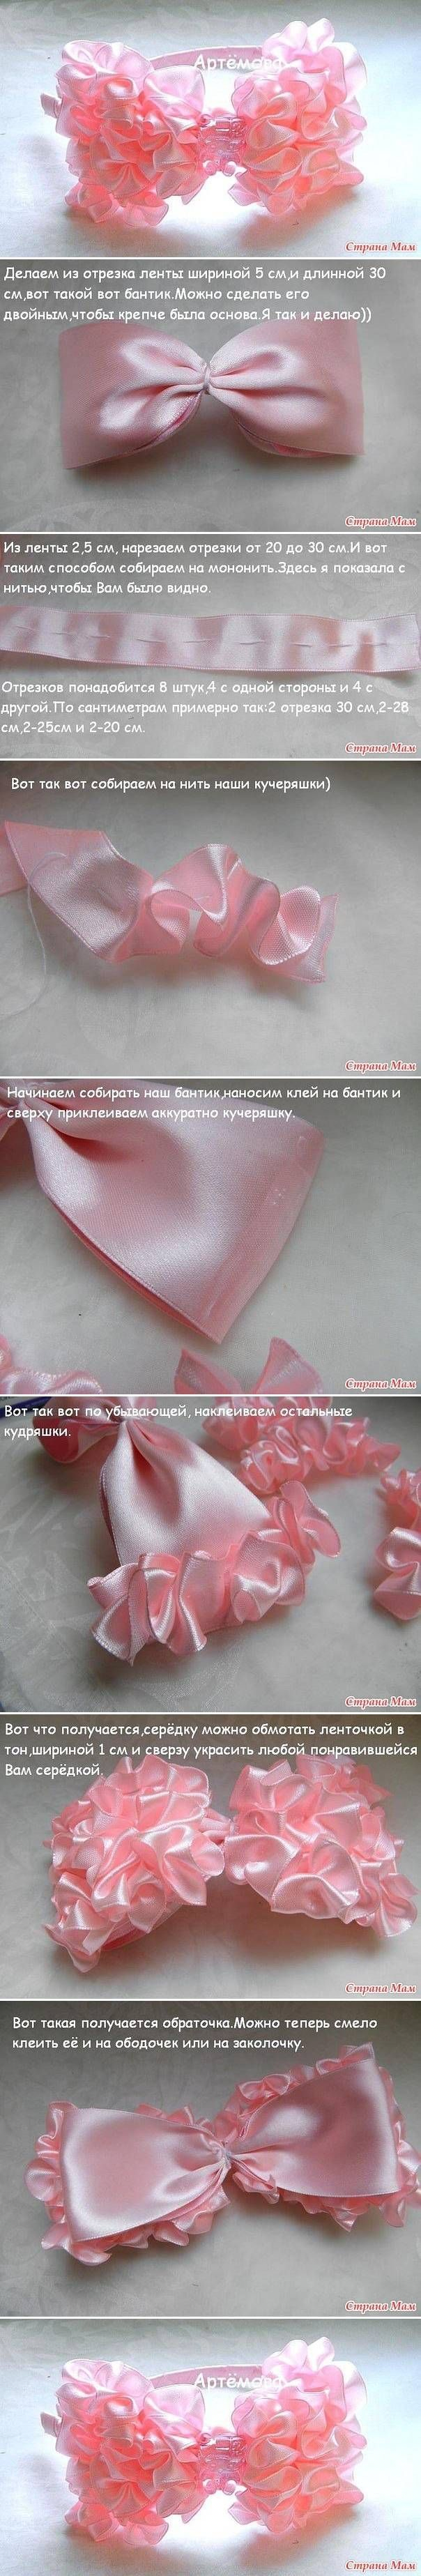 DIY Pretty Pink Bow DIY Pretty Pink Bow